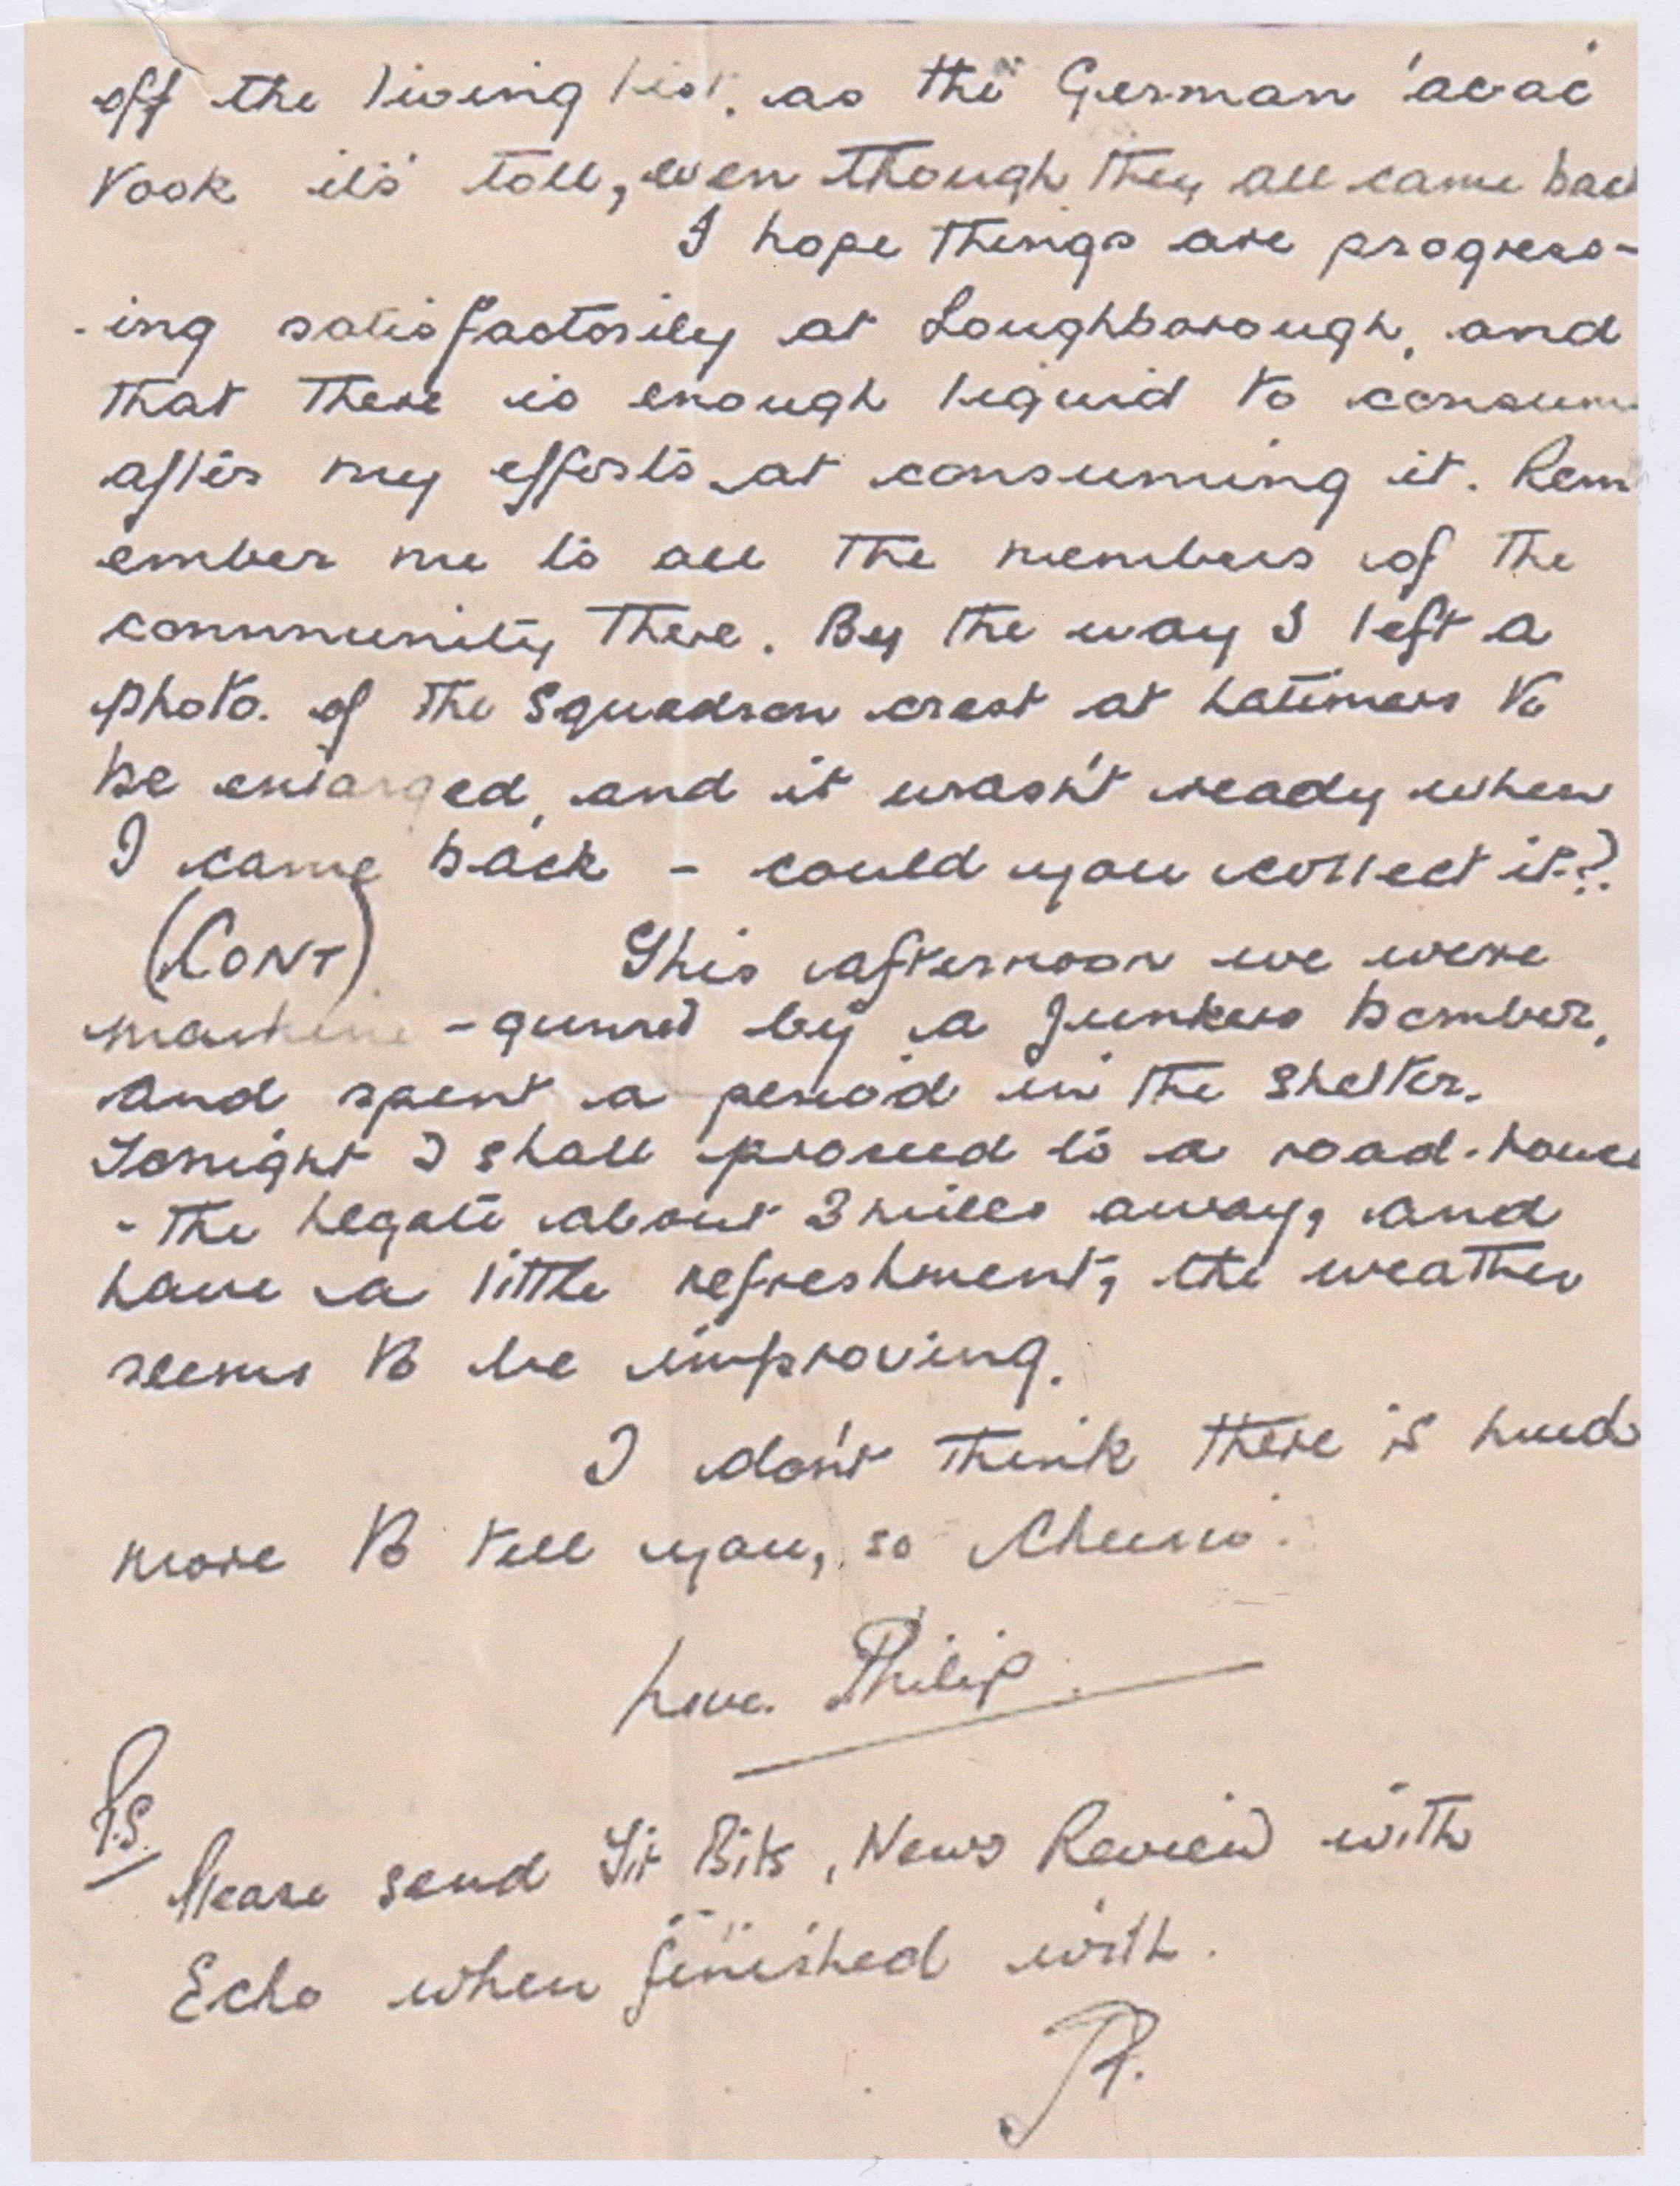 phil_letter_from_coningsby_2_of_2_001.jpg